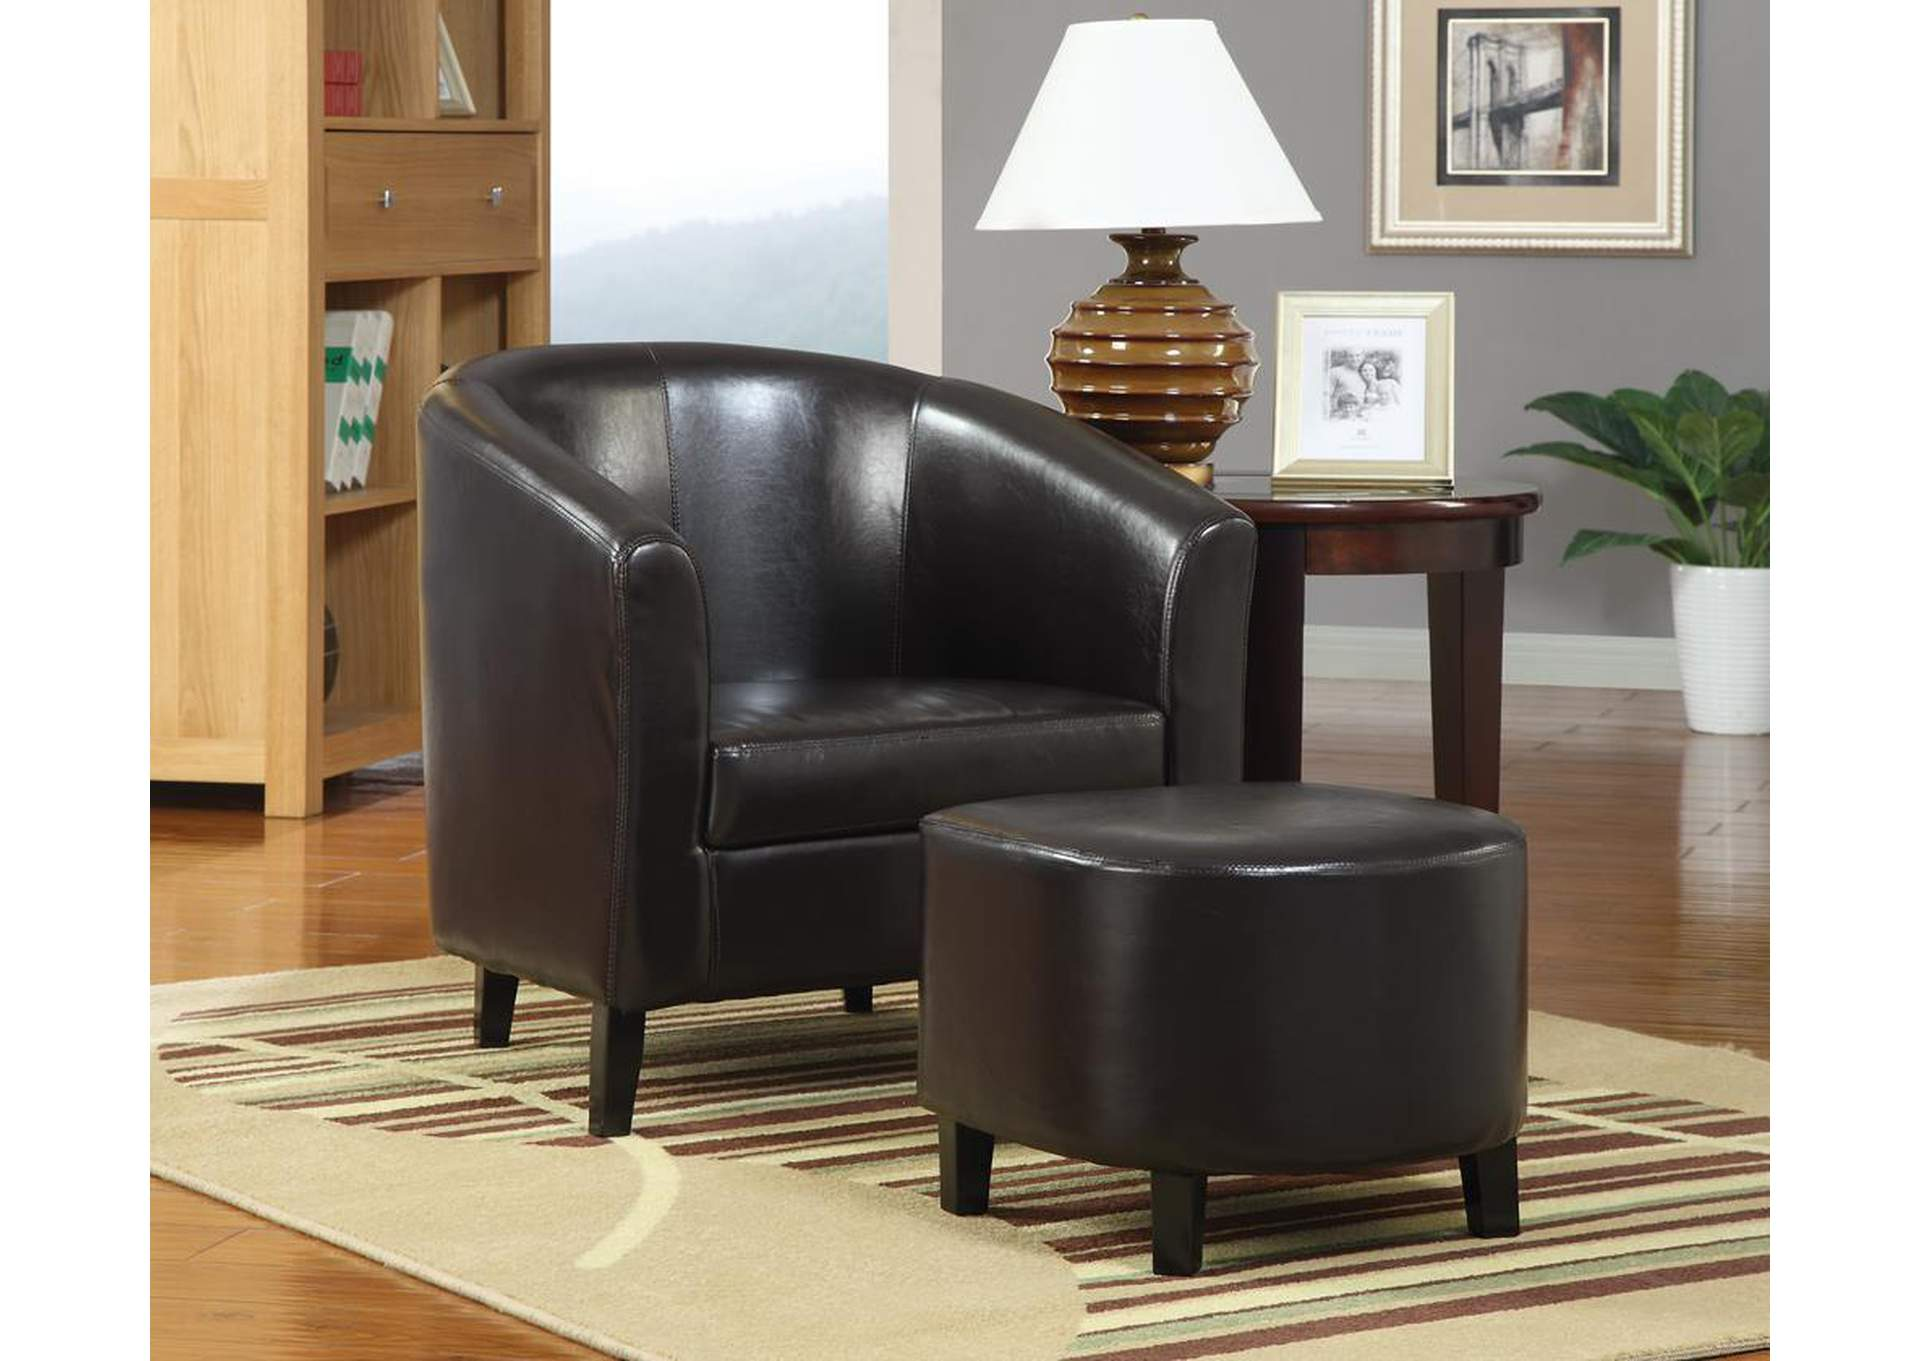 Black Leather Accent Chair and Ottoman,Coaster Furniture